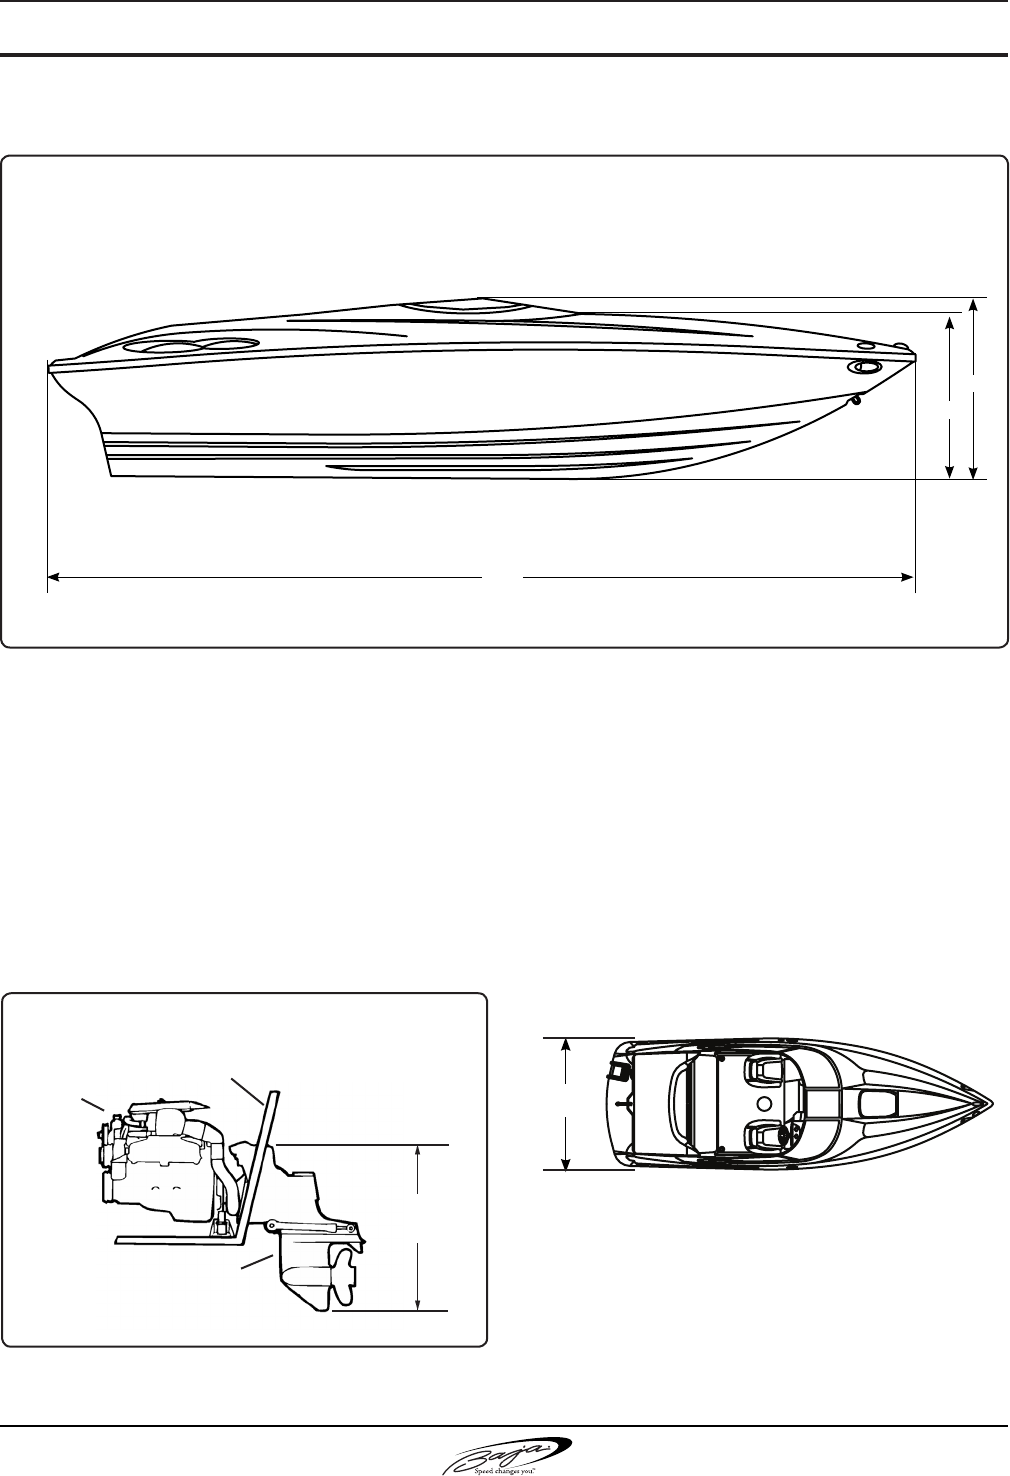 Baja Marine Performance H2x Users Manual Boat Electrical Schematic